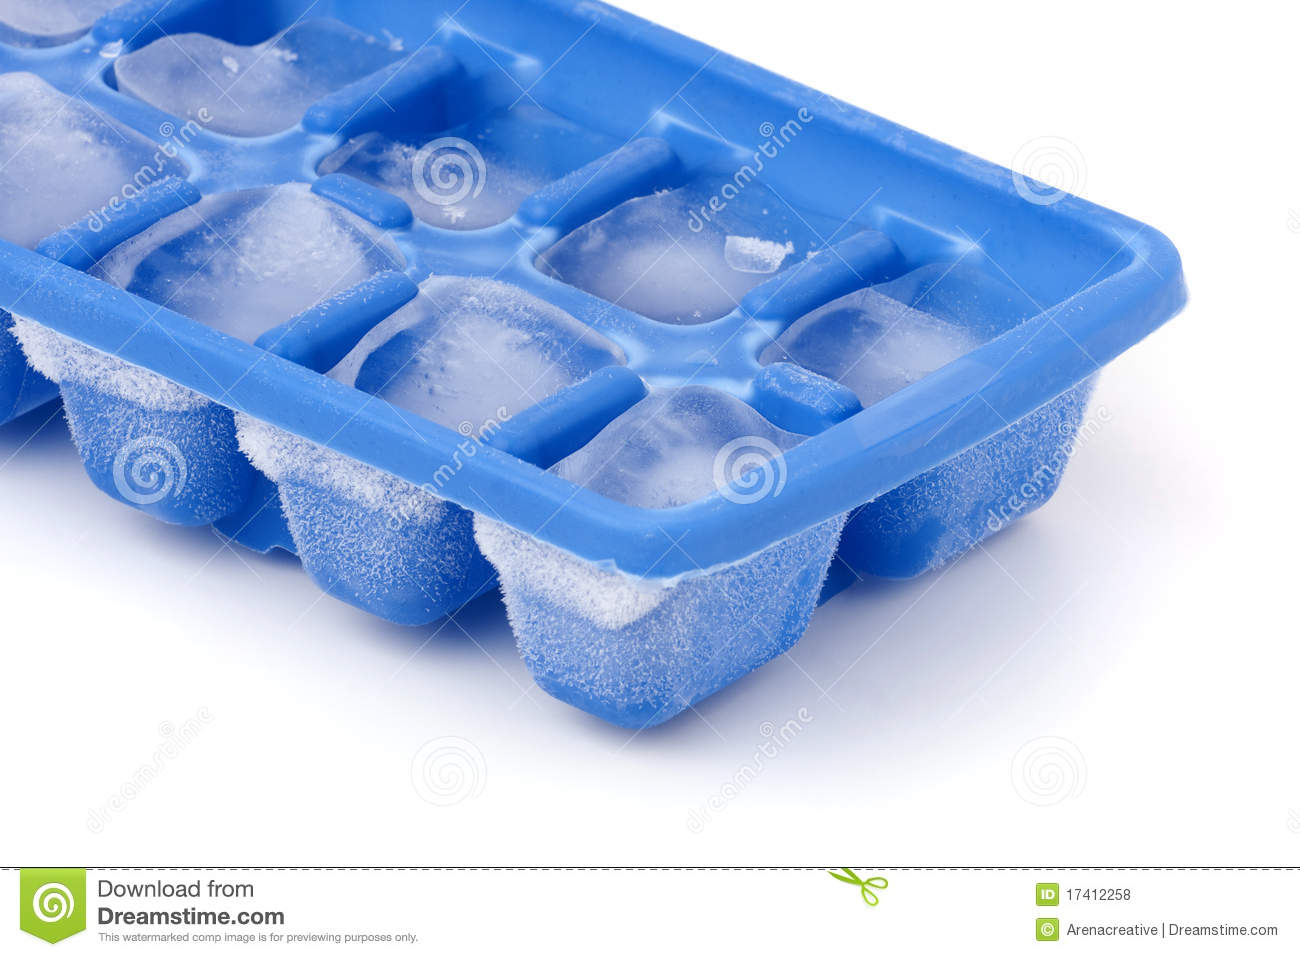 fill each box in the ice cube tray half way up with water and add a mento to each one. Then put it in the freezer over night